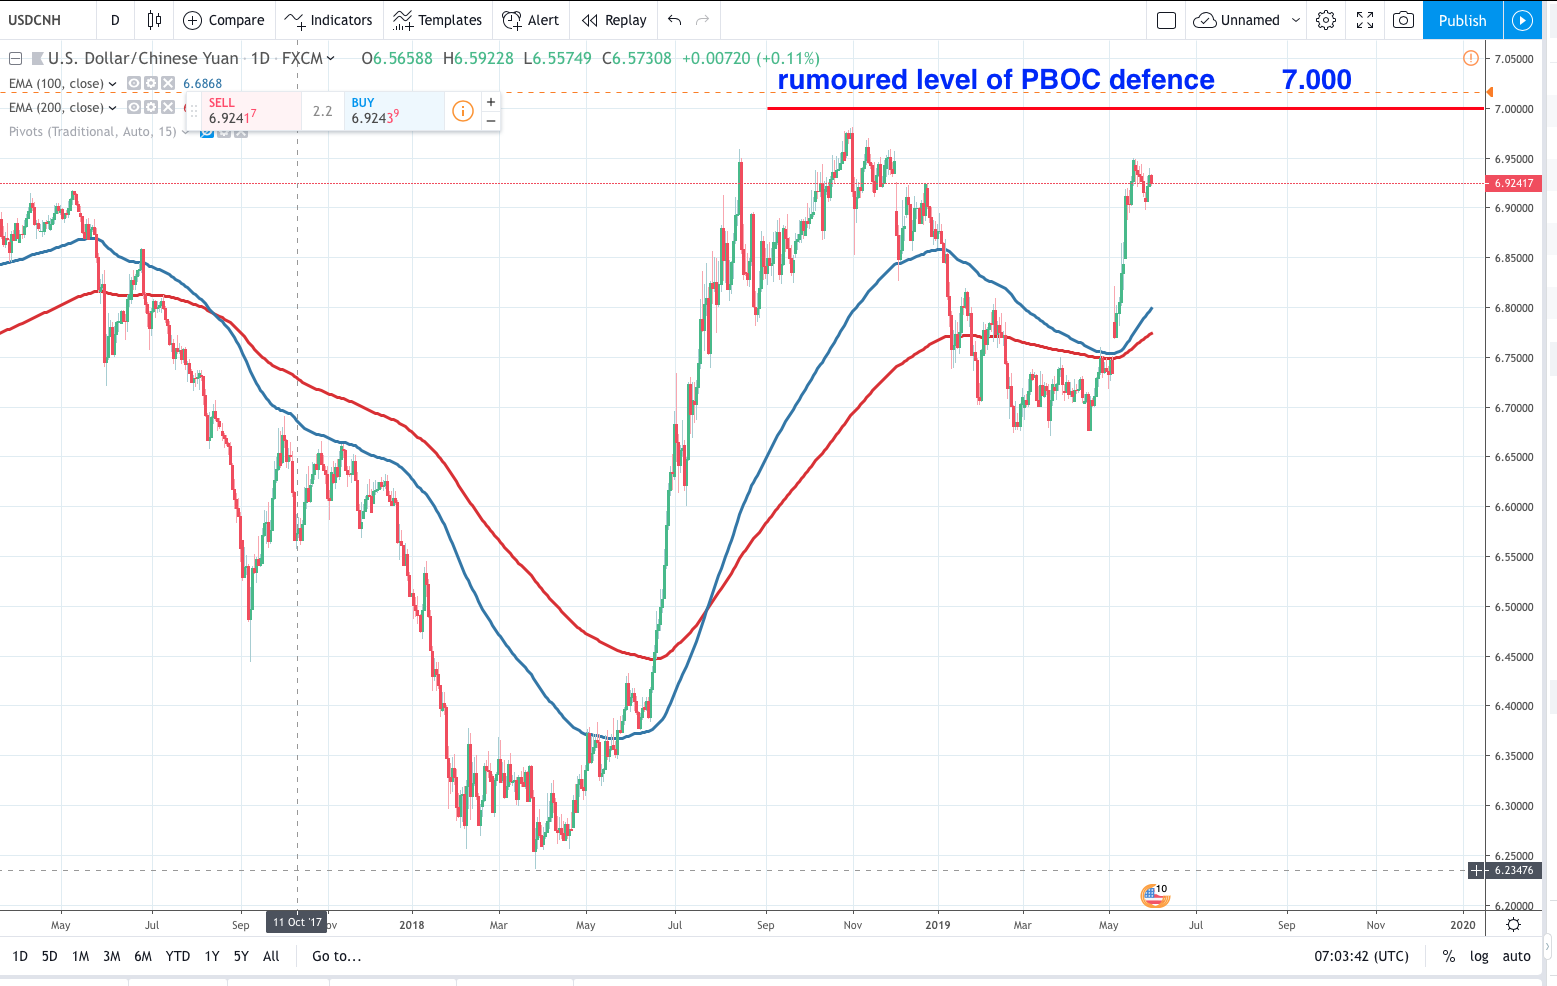 PBOC: some battles are not worth fighting